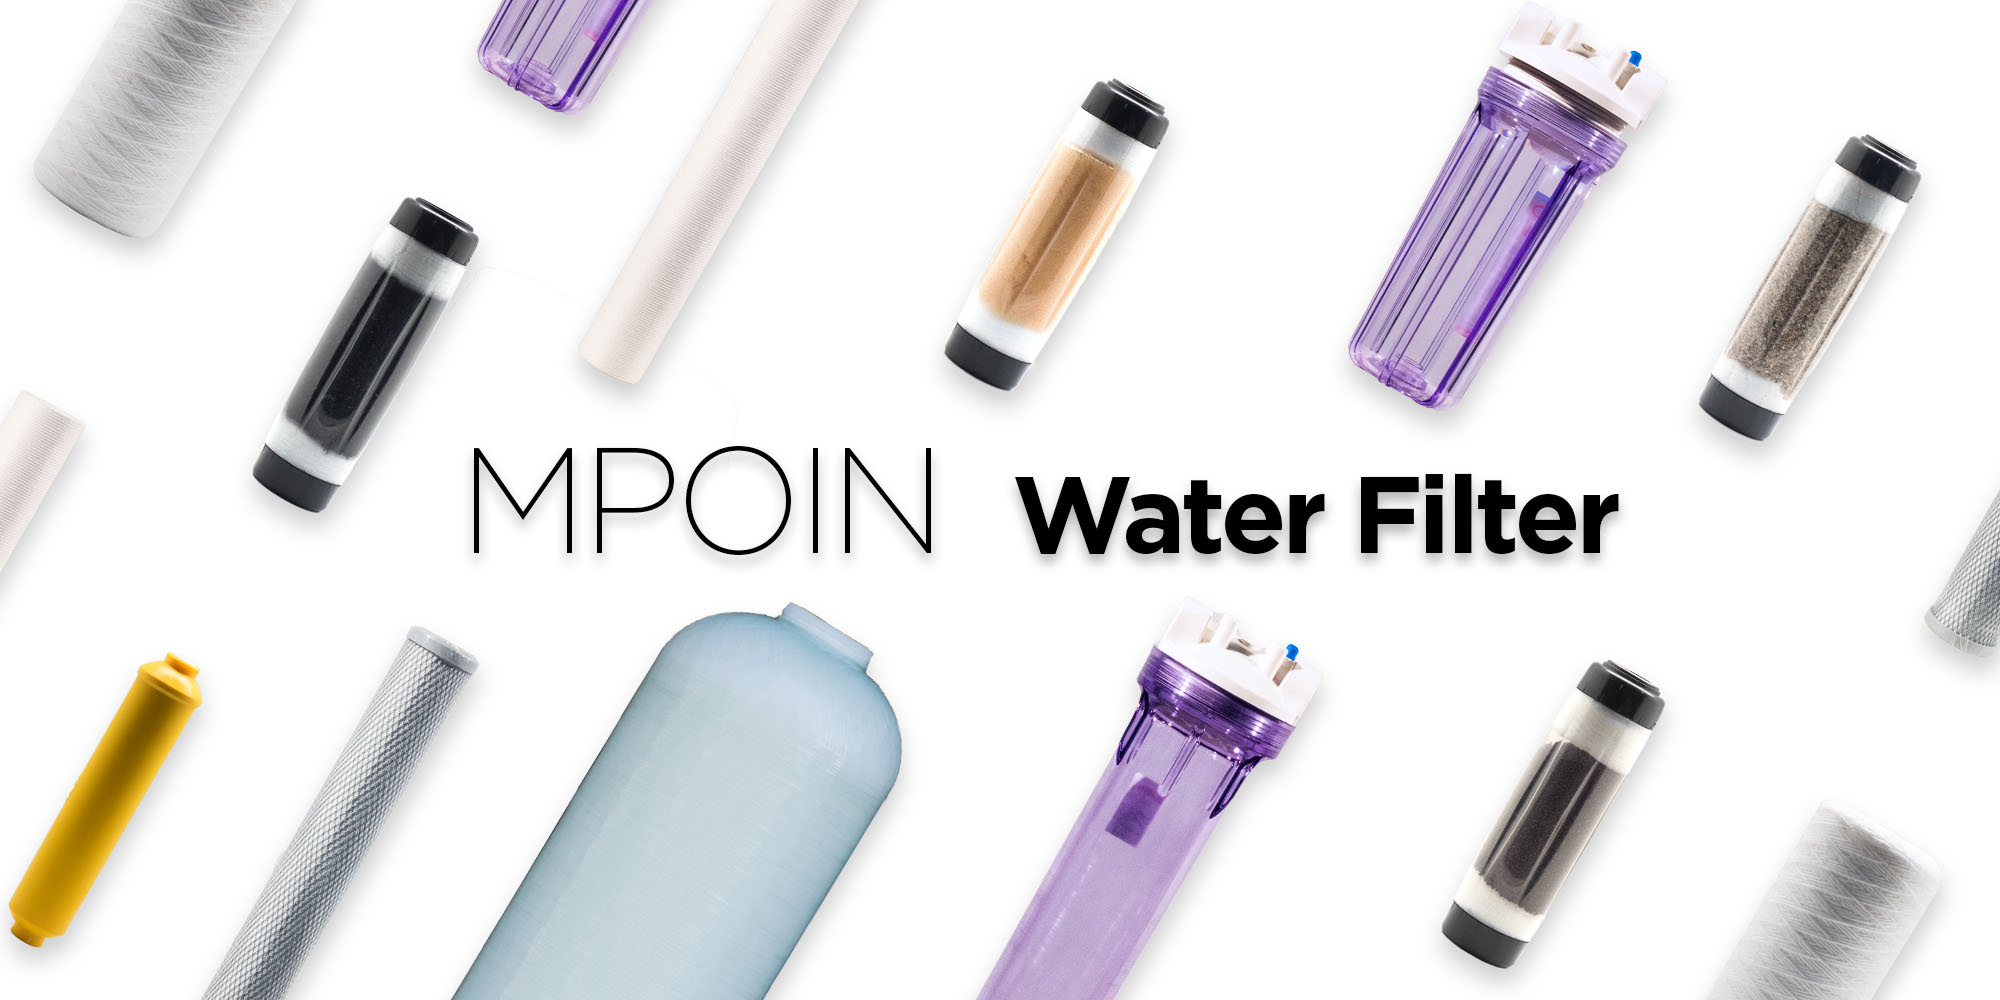 Filter Air MPOIN - Water Filter MPOIN